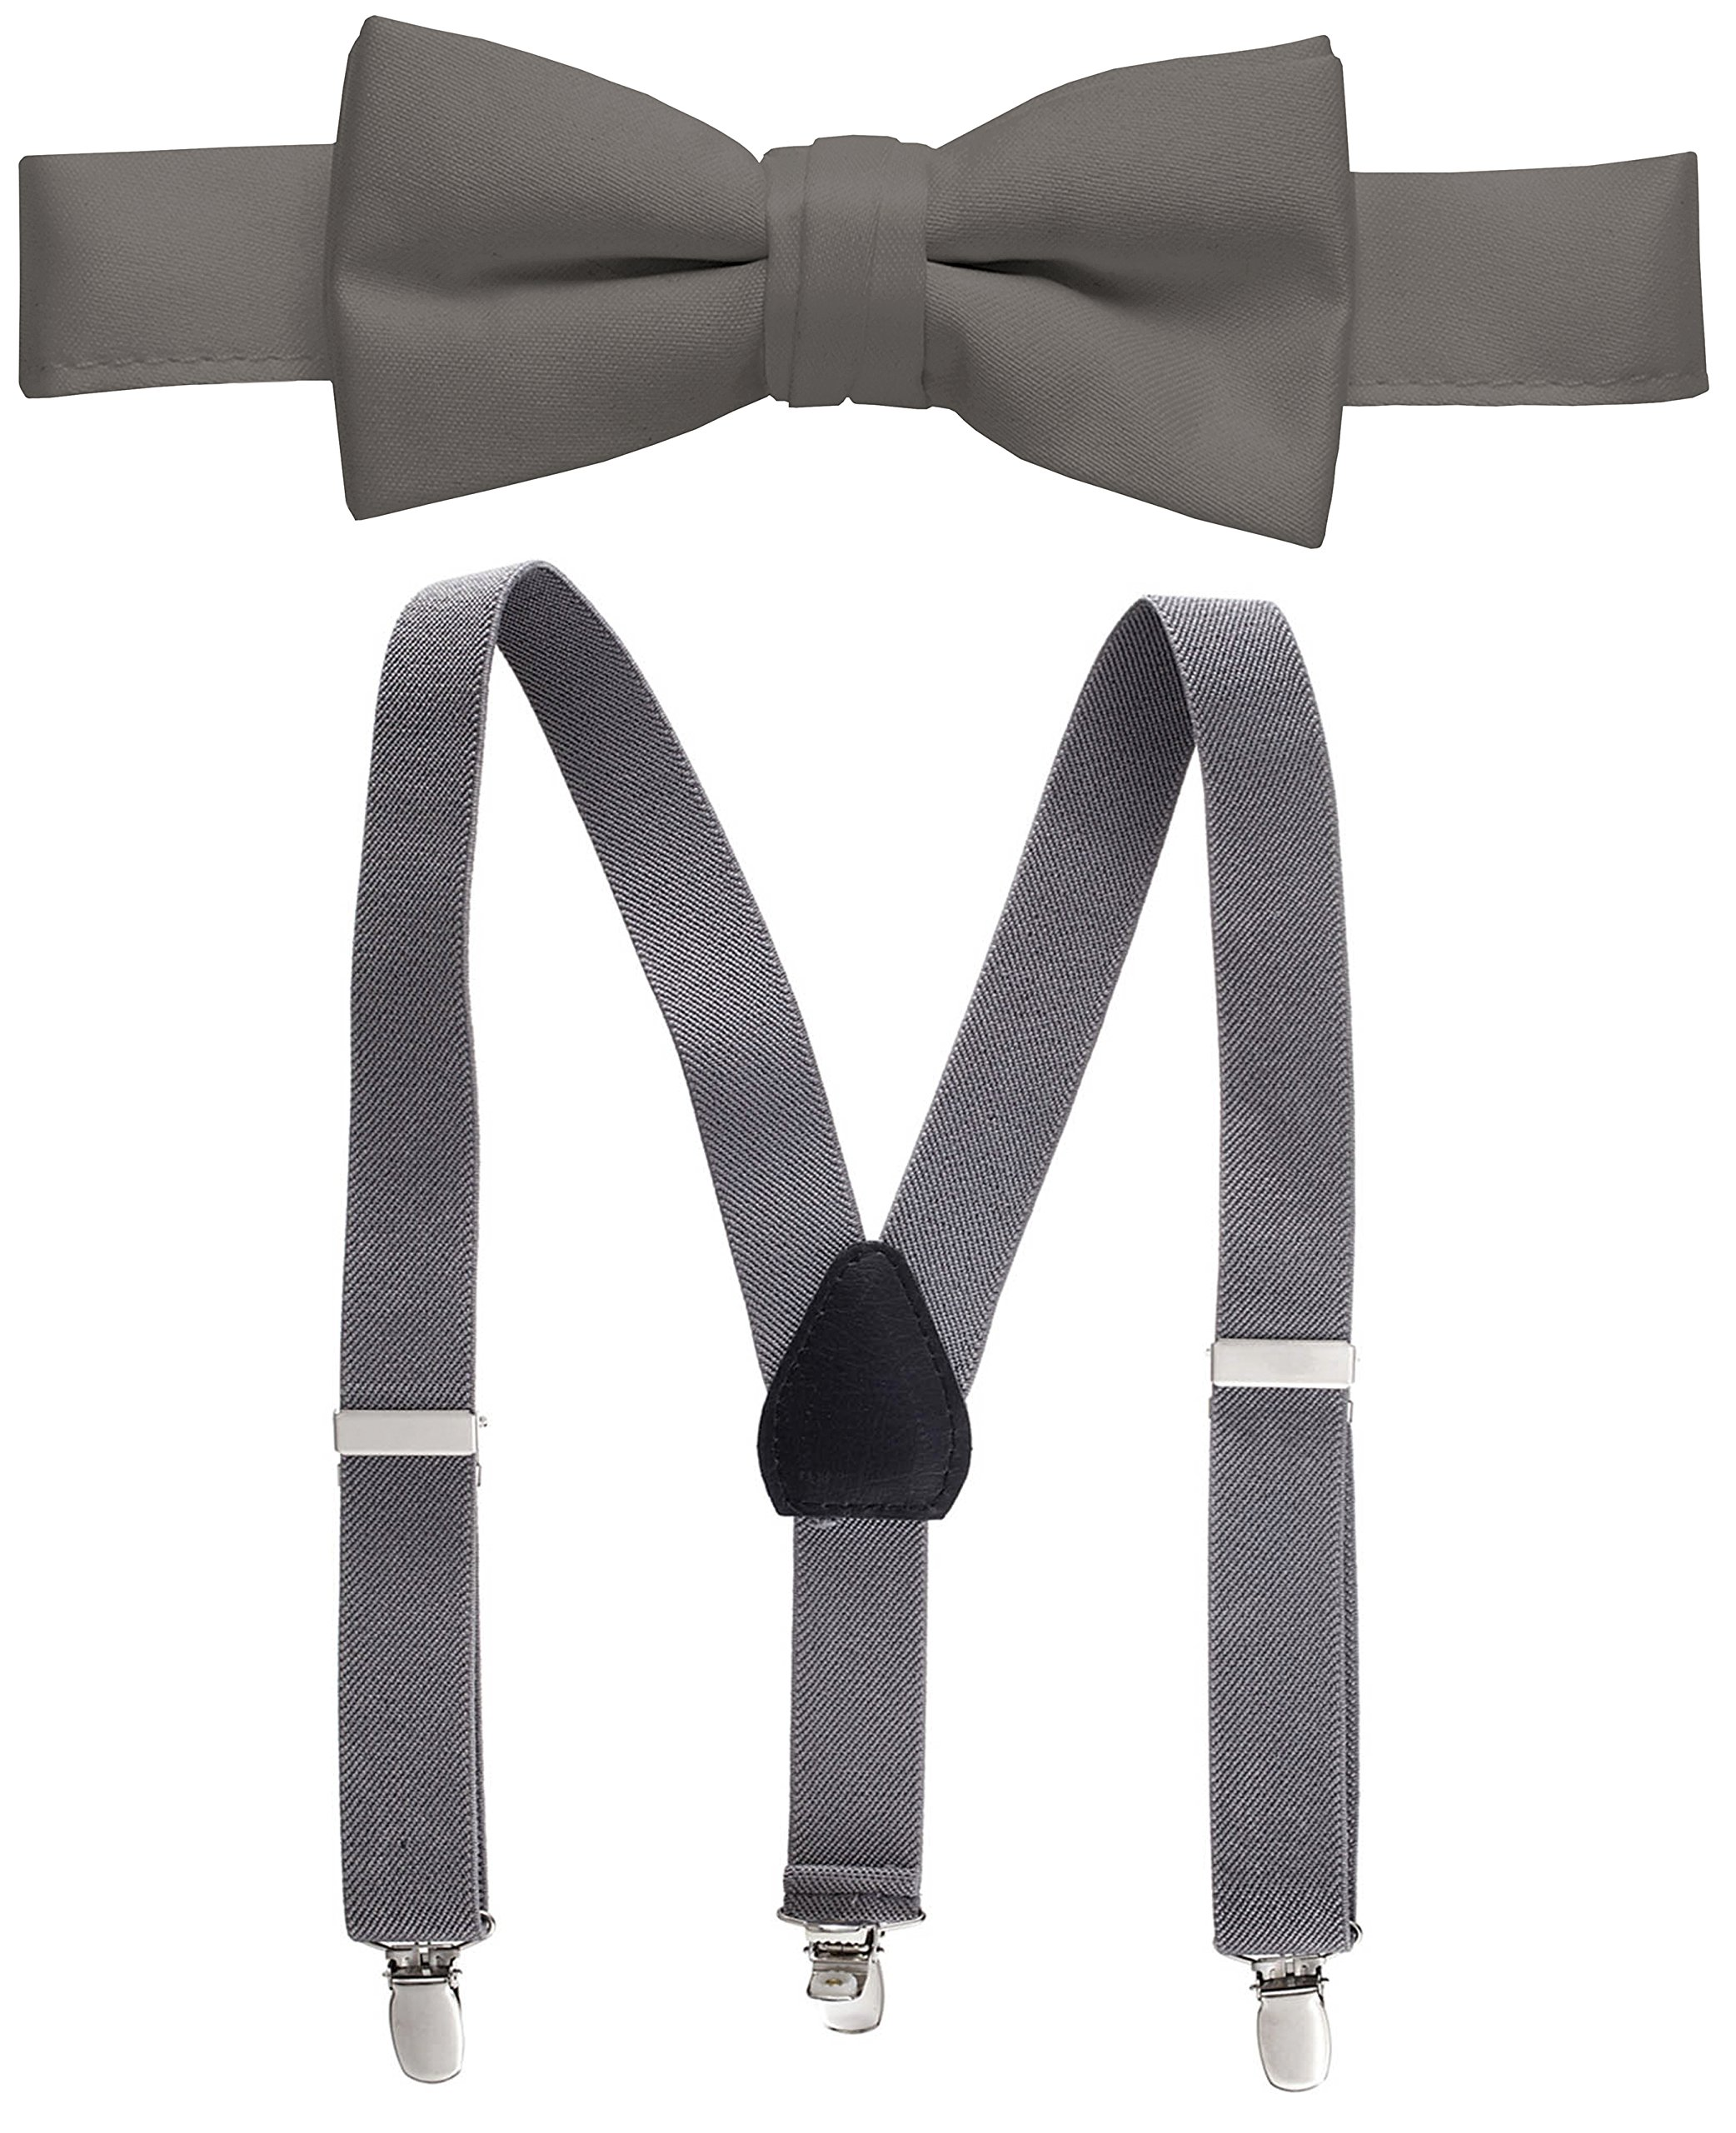 Hold'Em Suspender and Bow Tie Set for Kids, Boys, and Baby - Proudly Made in USA - Extra Sturdy Polished Silver Metal Clips, Pre tied Bow Tie-Gray 26''